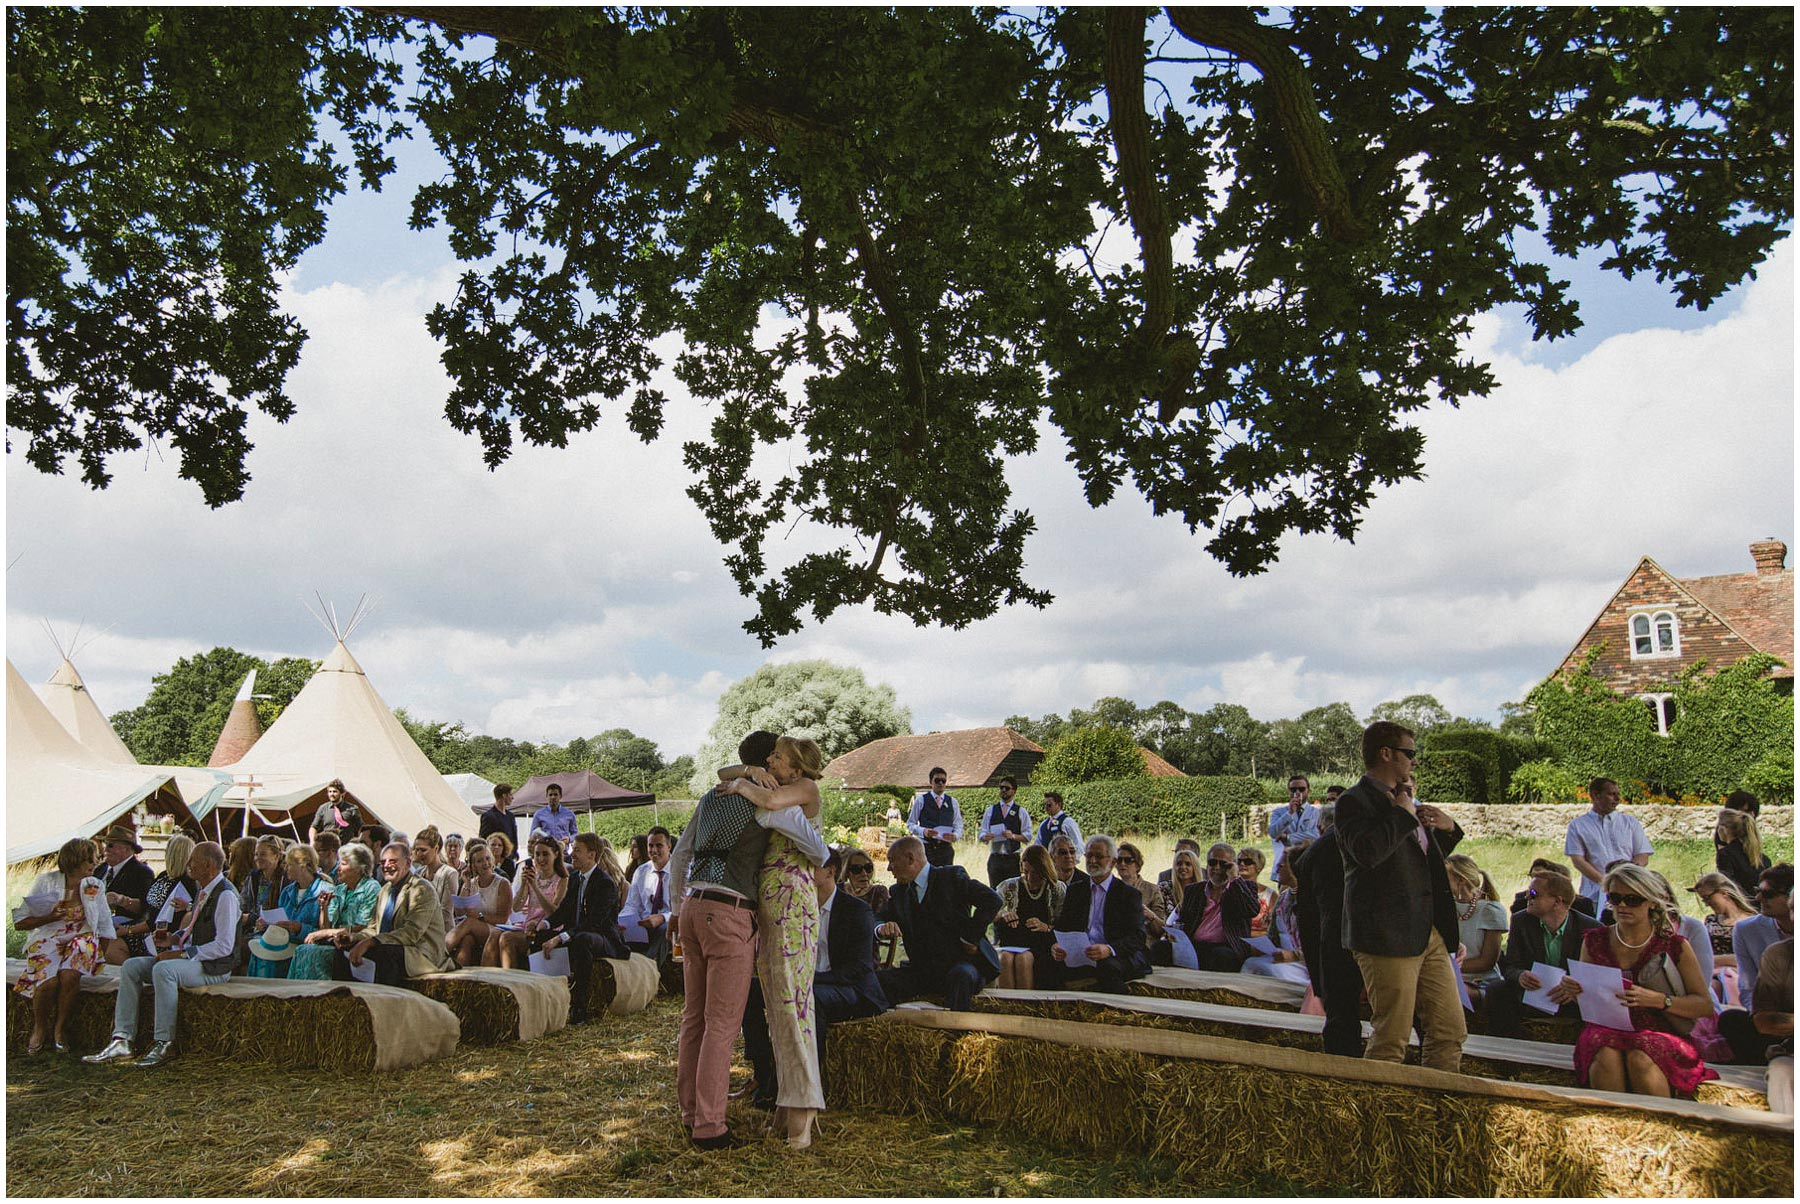 Kent-Festival-Tipi-wedding-photography_0054